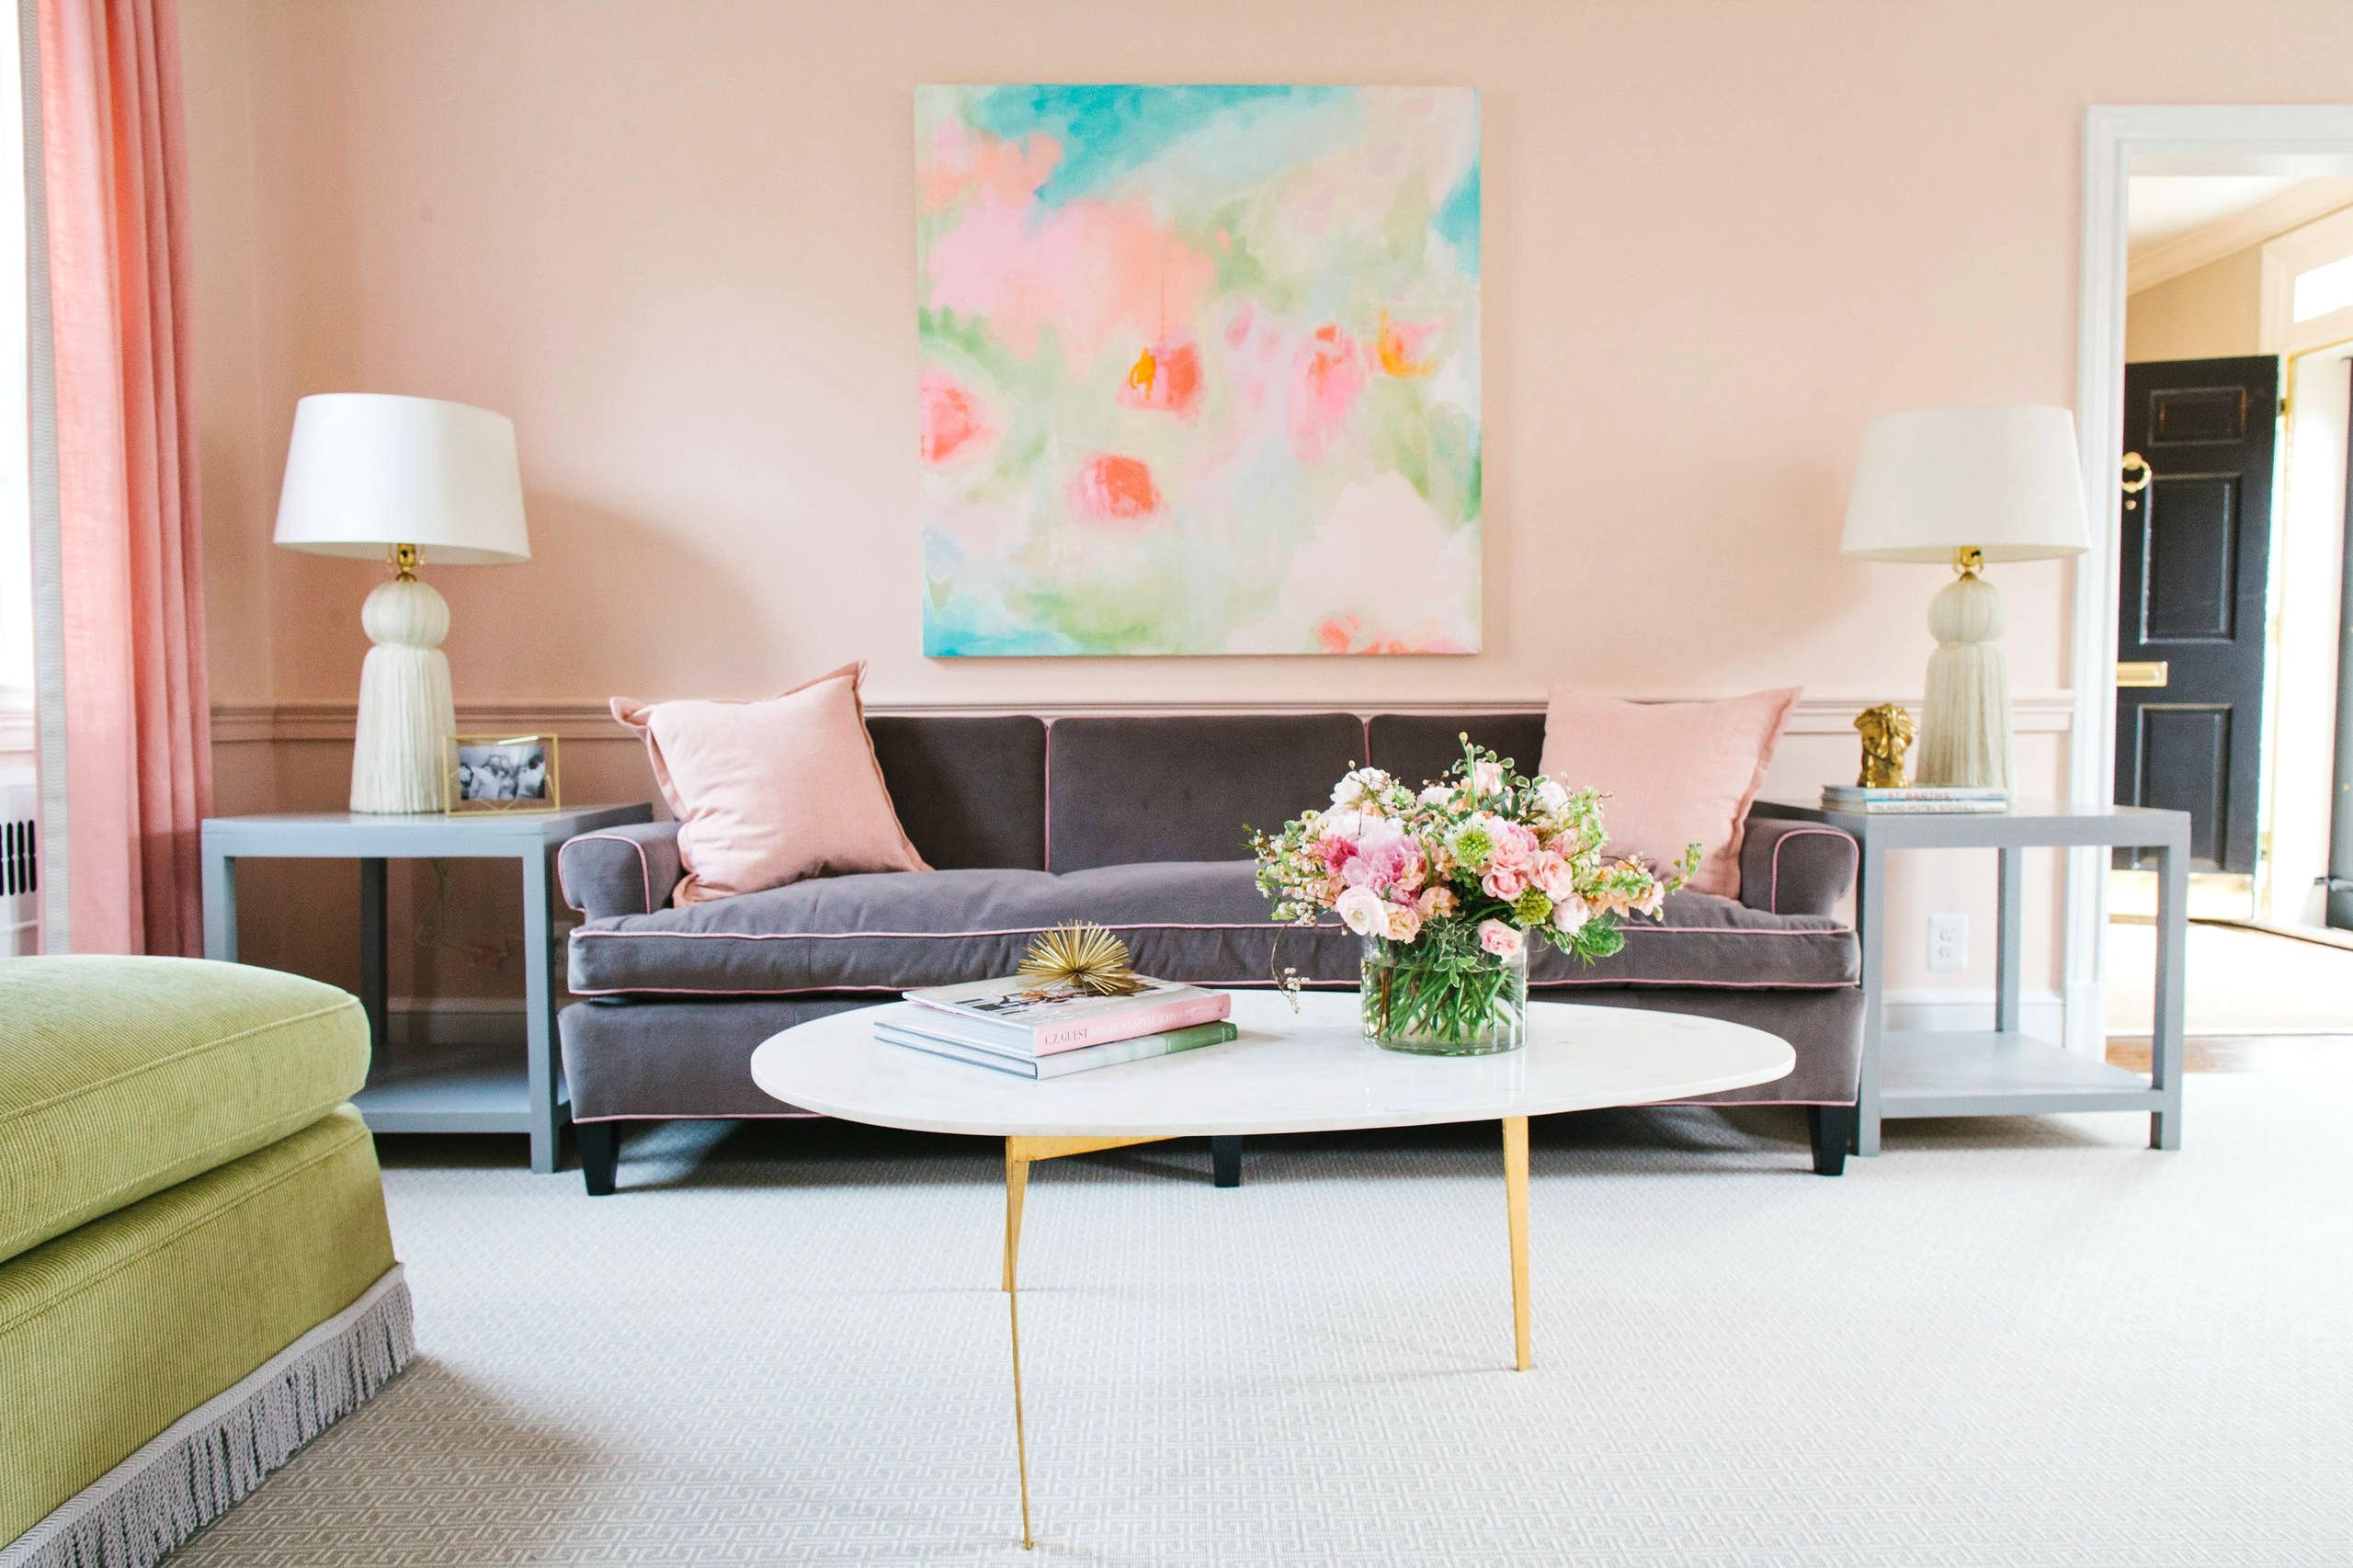 5 Stunning Pastel Rooms Decorating With Pantone 2016 Color Trends Chic Living Room Design Living Room Color Pastel Home Decor #pastel #living #room #colors